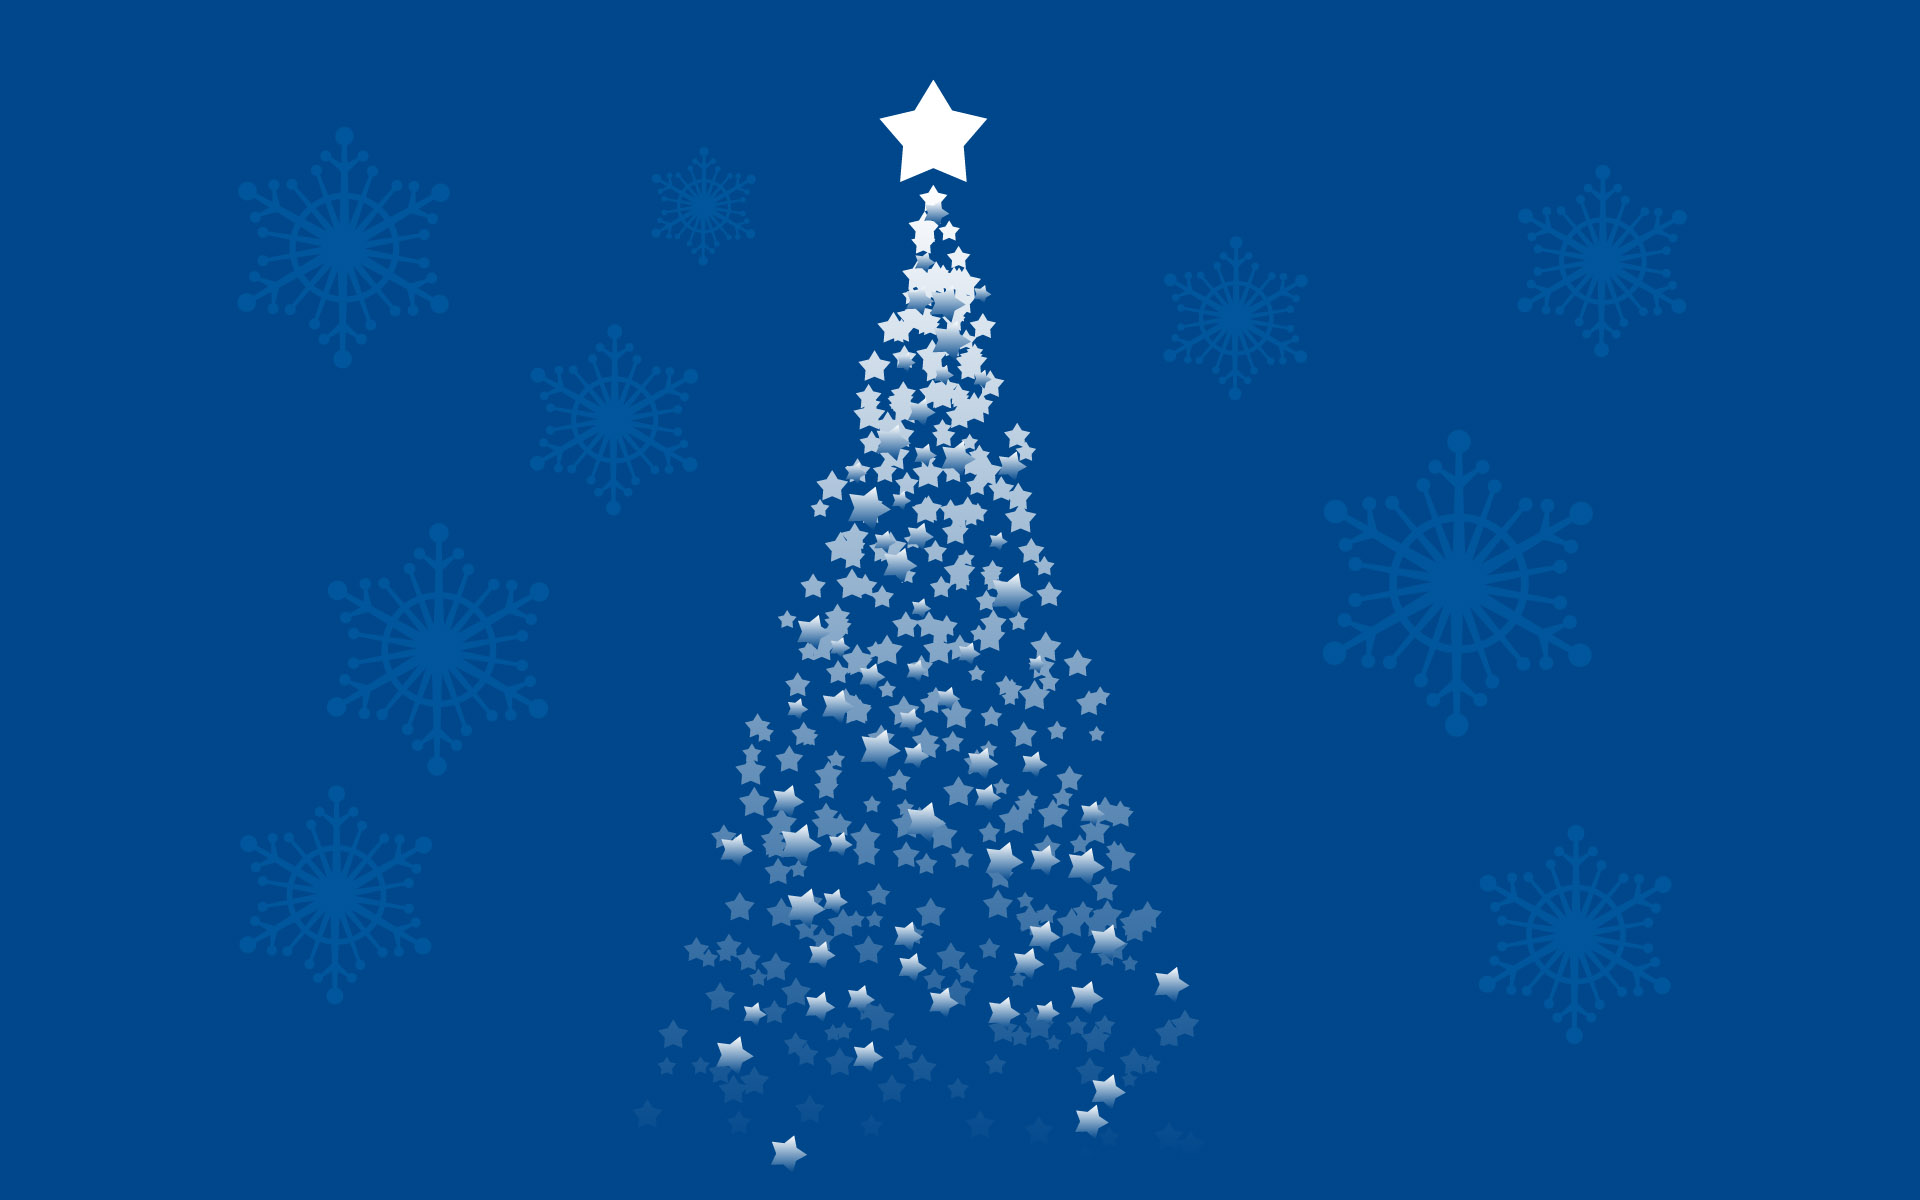 Blue Stars 2012 Christmas PPT Backgrounds